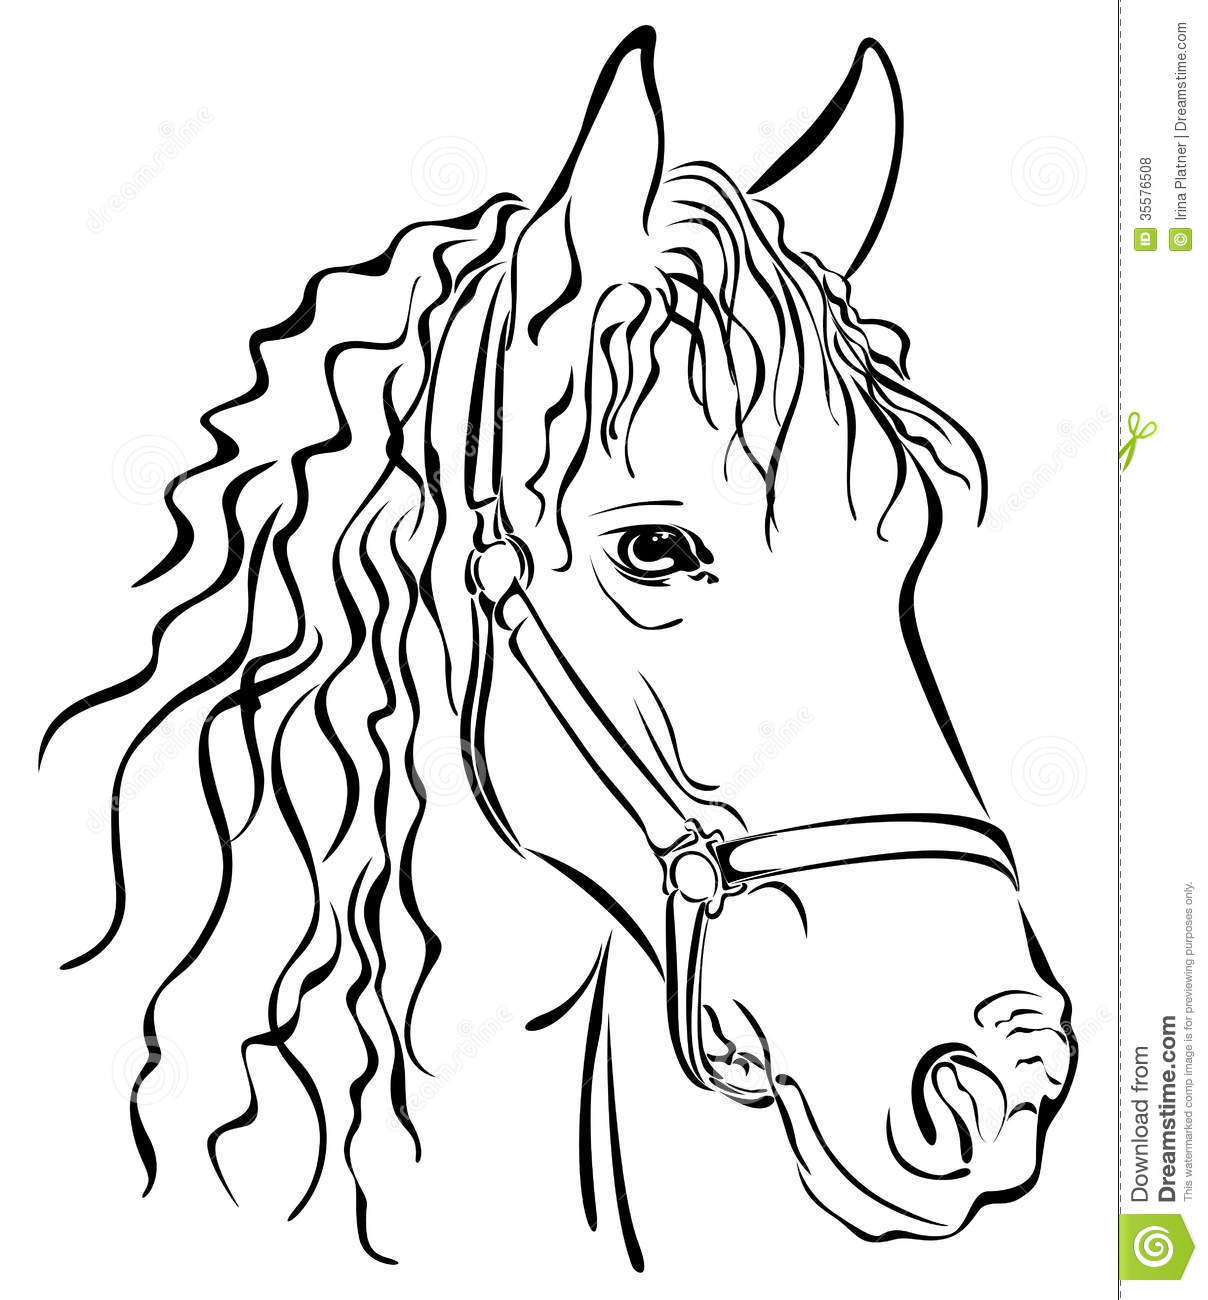 Horse Drawing additionally munityservice furthermore 550705860654011789 as well 200 Free And Premium Hand Drawn Vectors together with Royalty Free Stock Images Doodle Social Media Symbols Design Element Blog  munication  puter Technology Isolated Vector Illustration Image39495949. on draft clipart